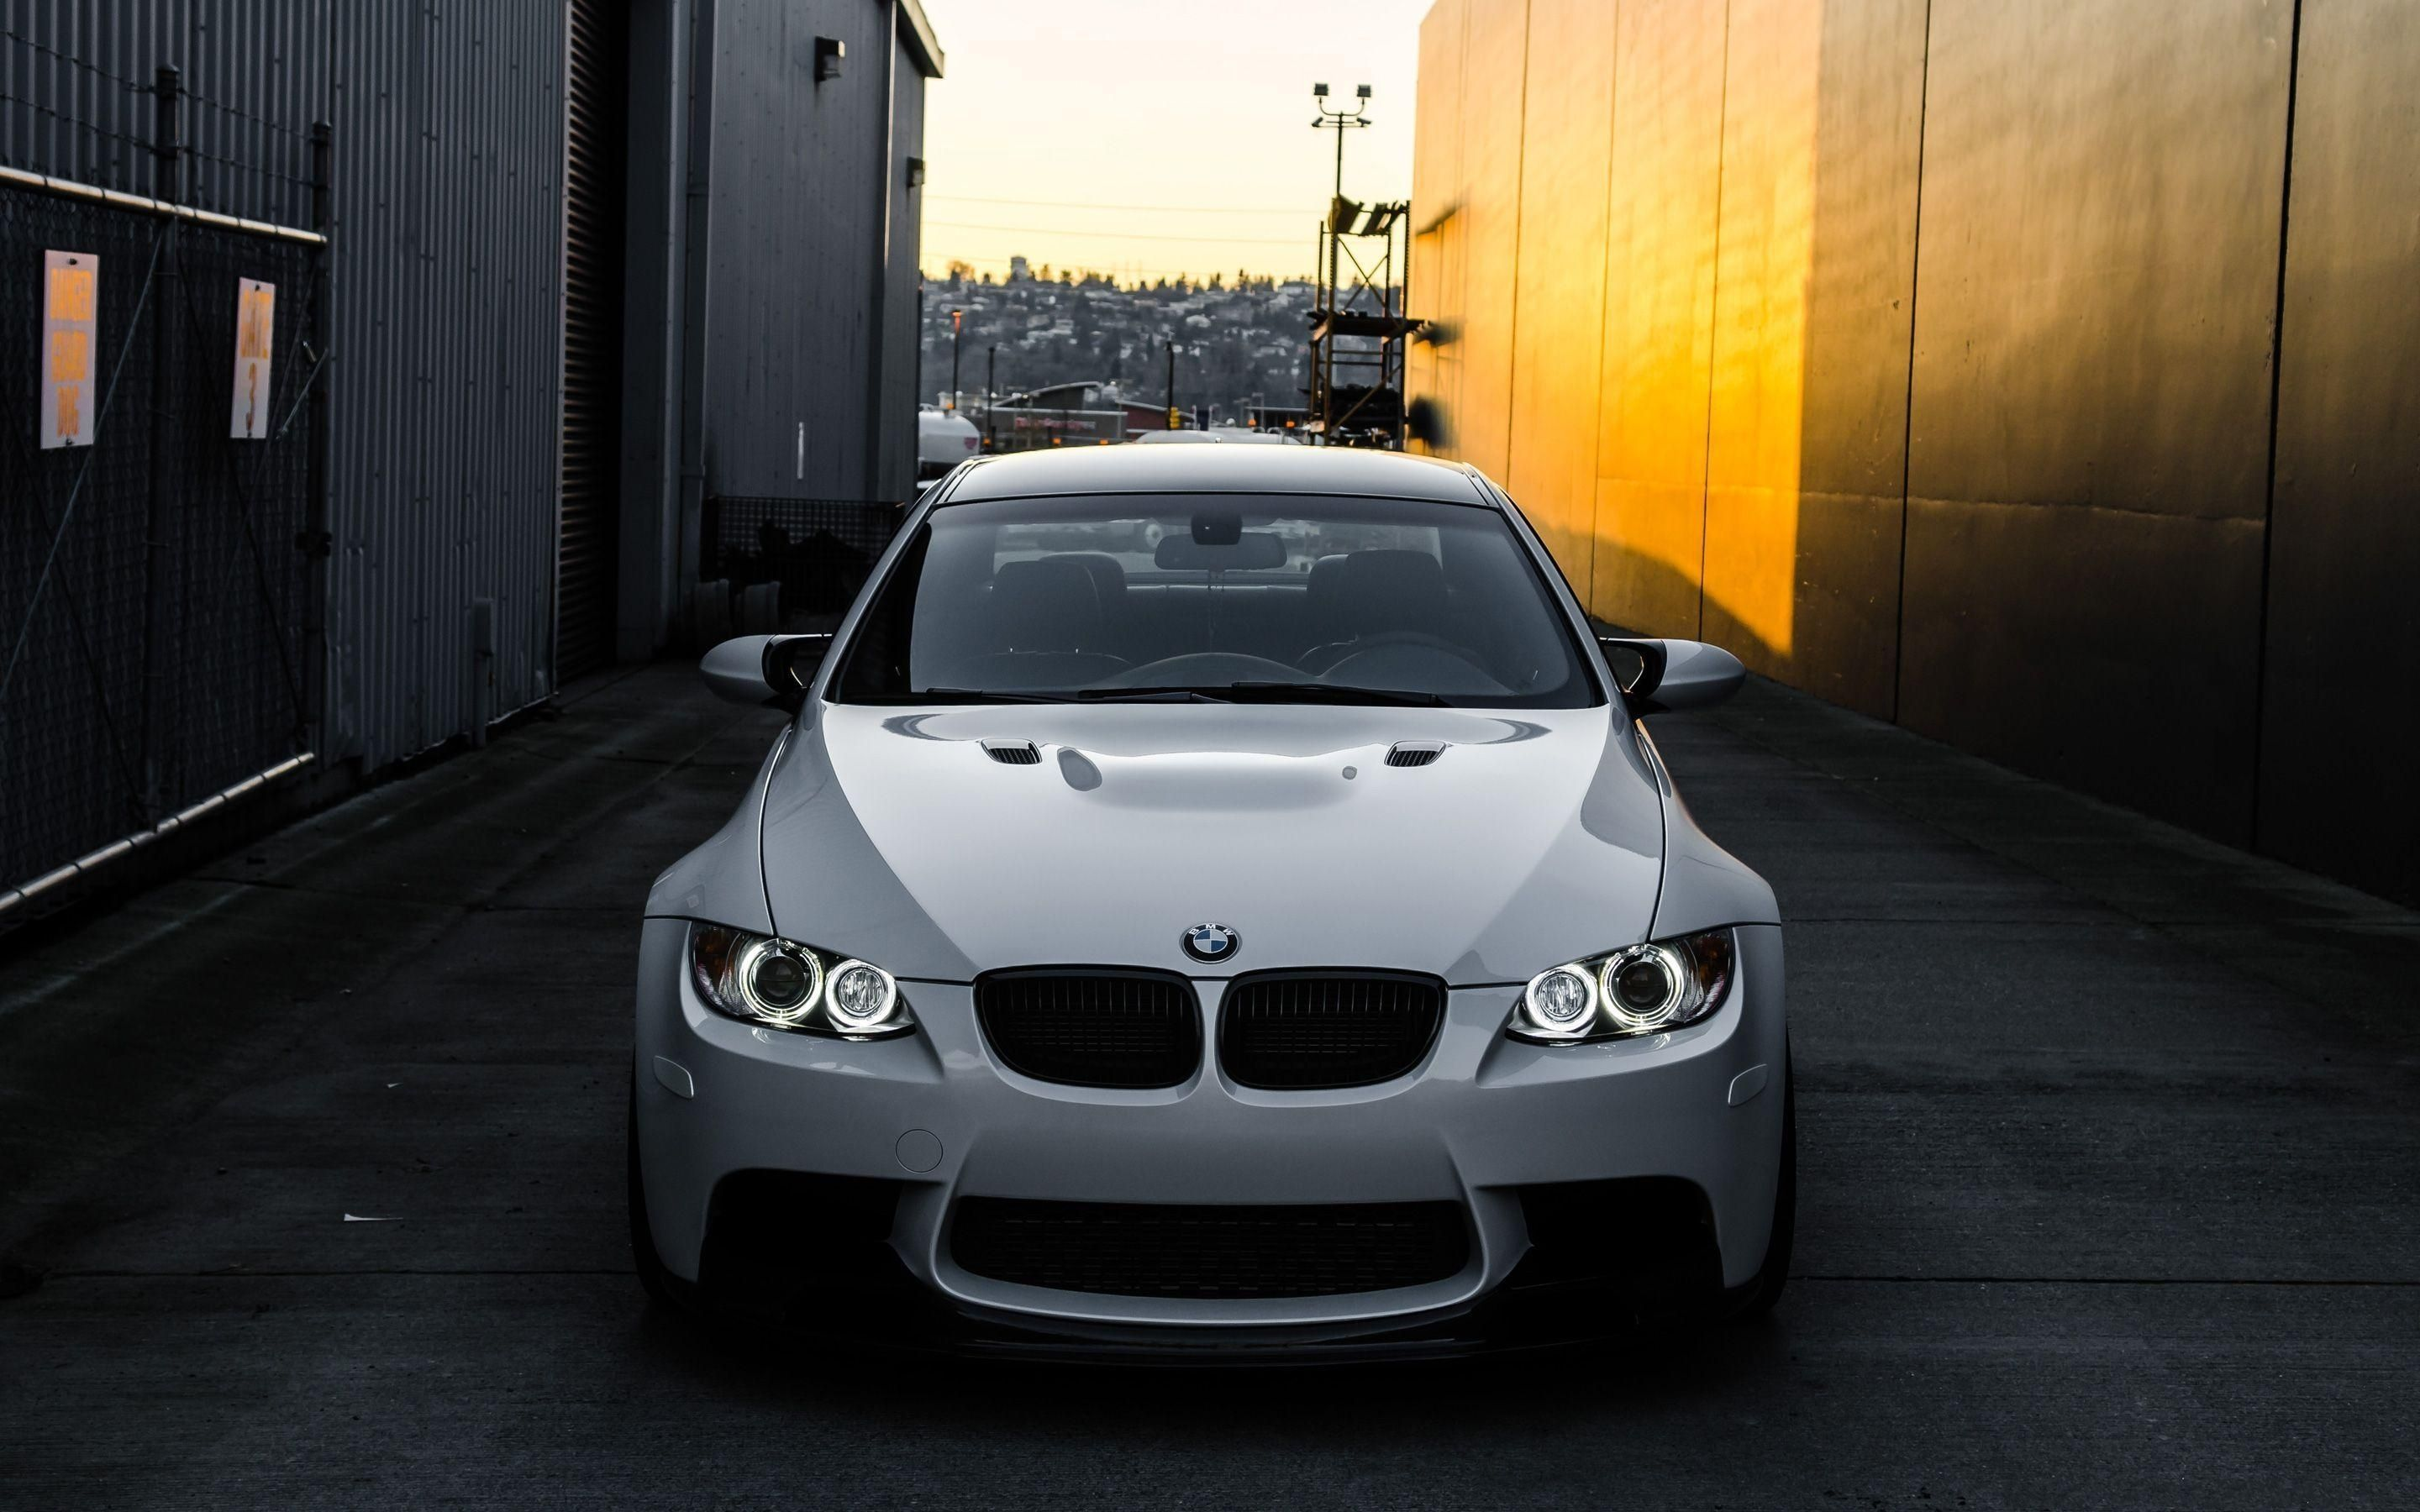 10 Latest Bmw M3 Wallpaper Hd Full Hd 1080p For Pc Background M Bmw